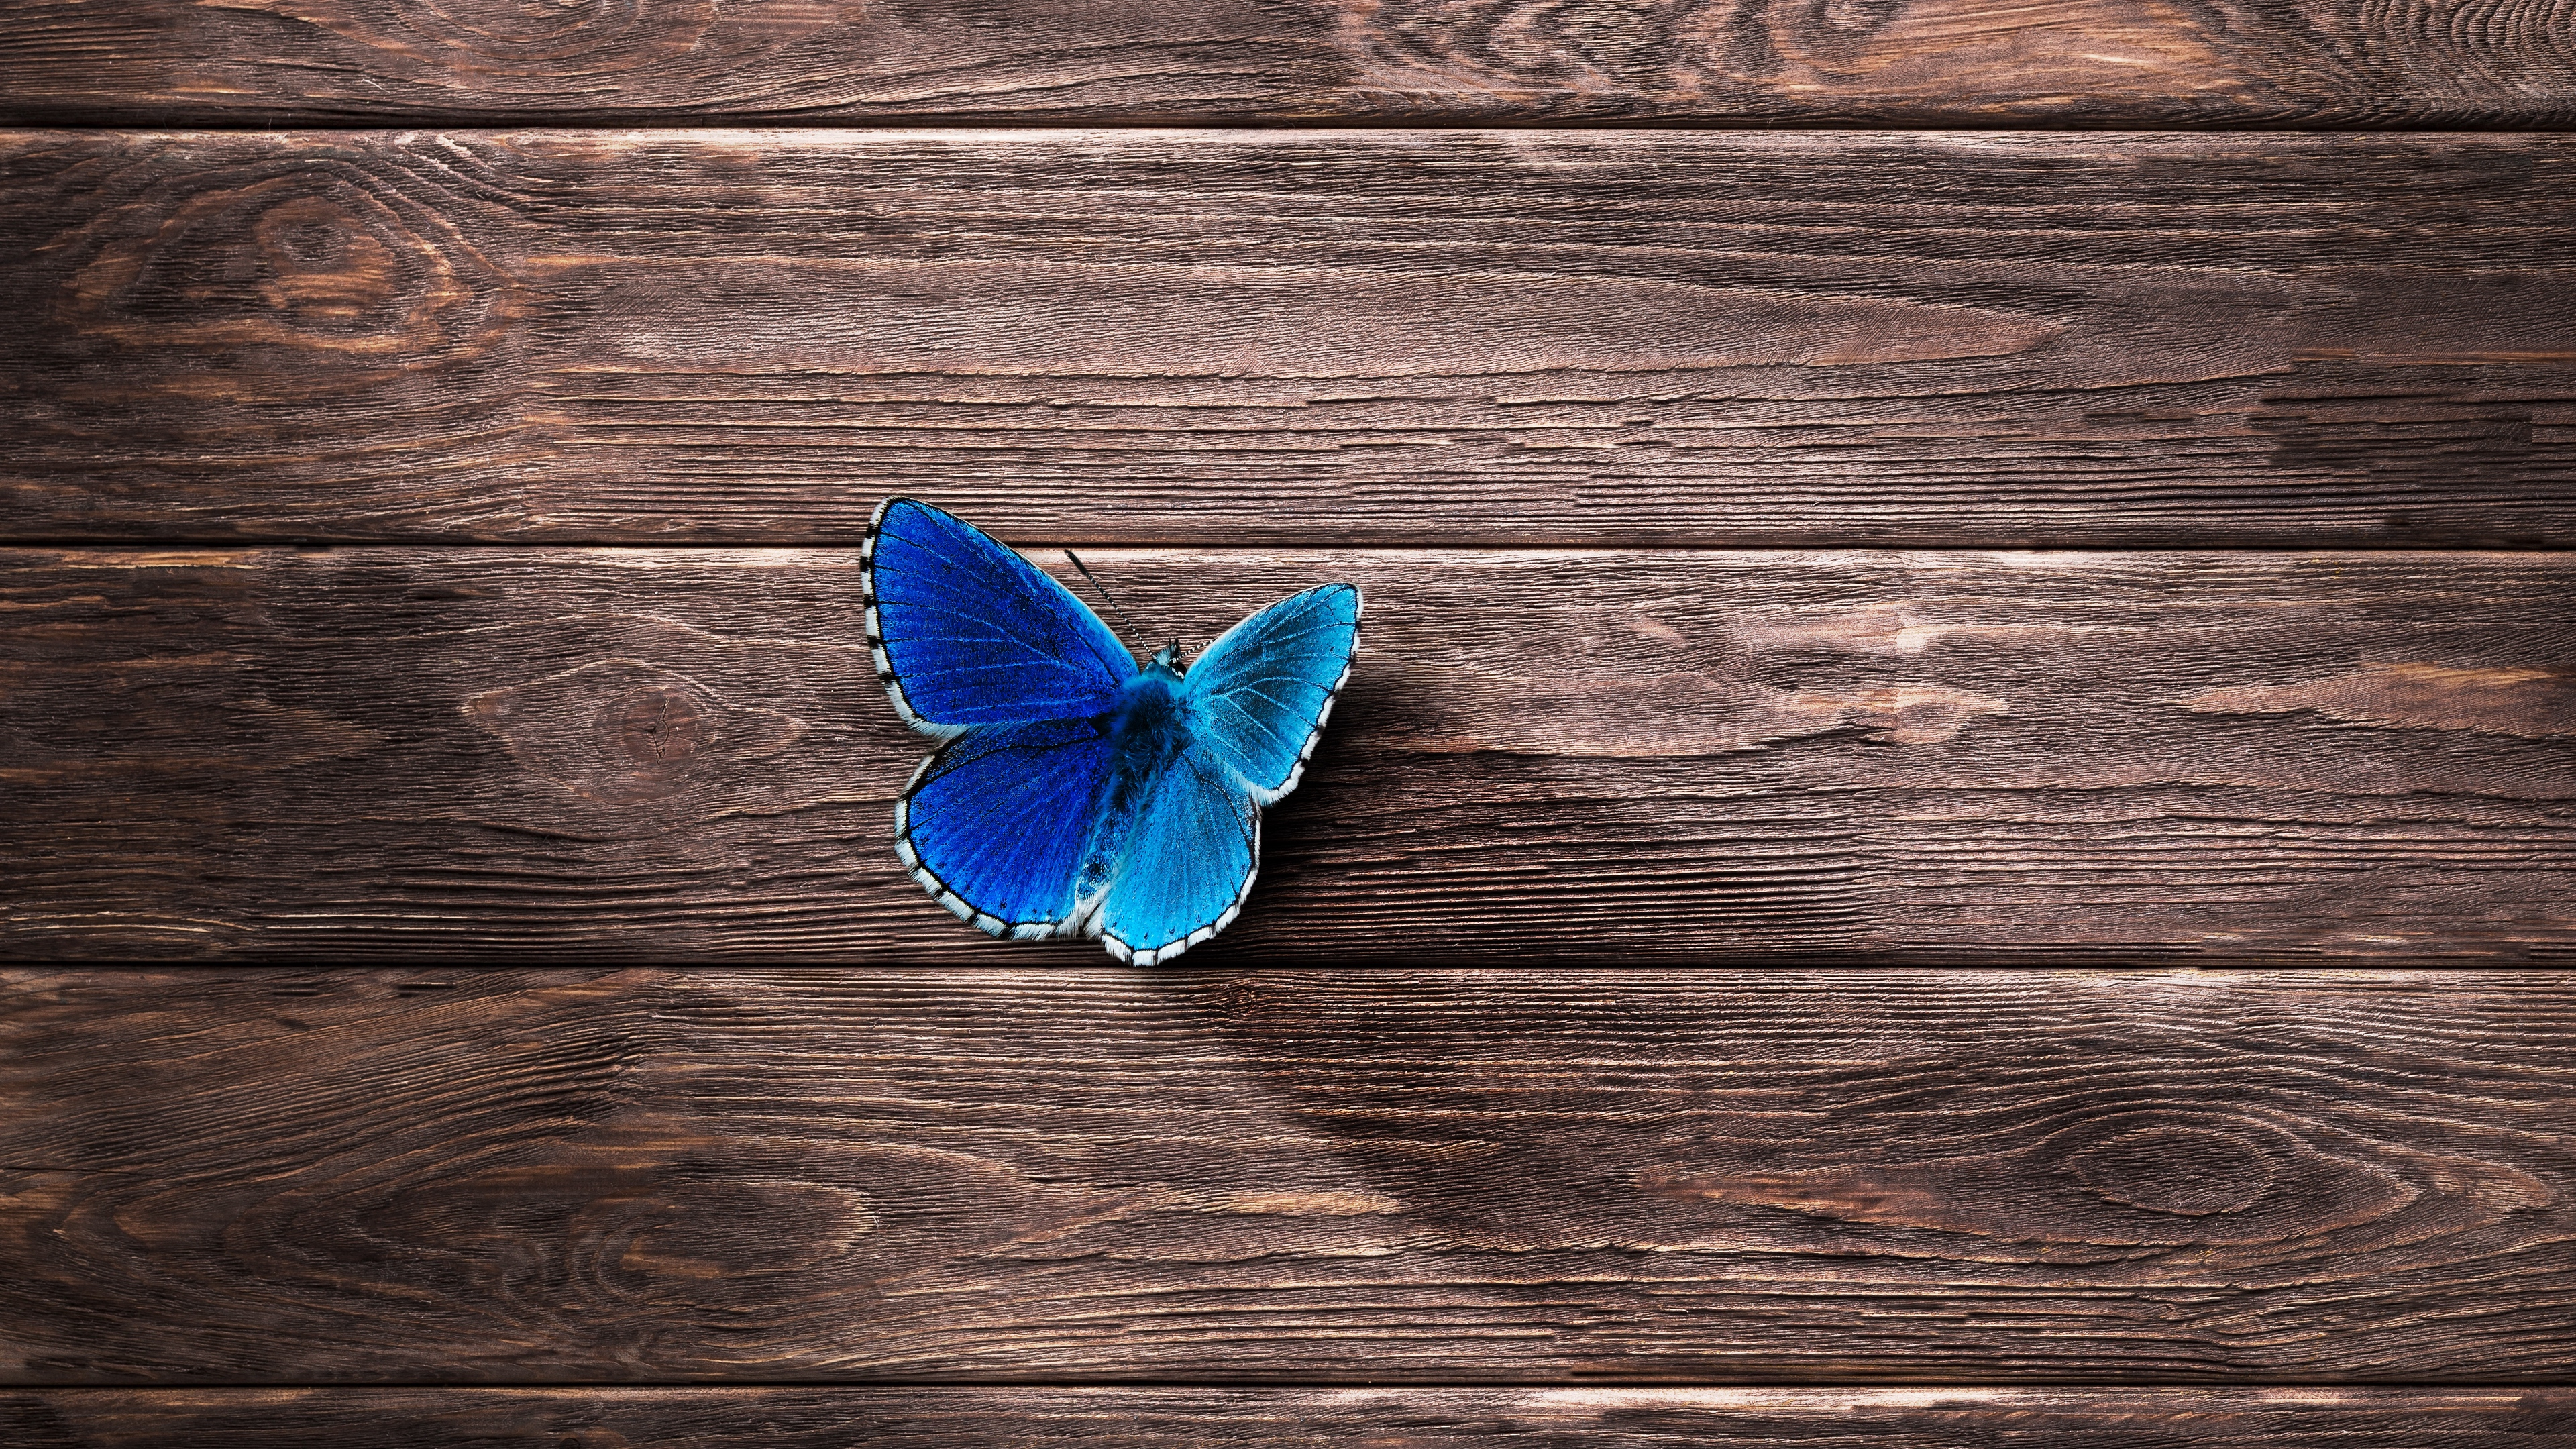 Butterfly 4k Wallpapers For Your Desktop Or Mobile Screen Free And Easy To Download